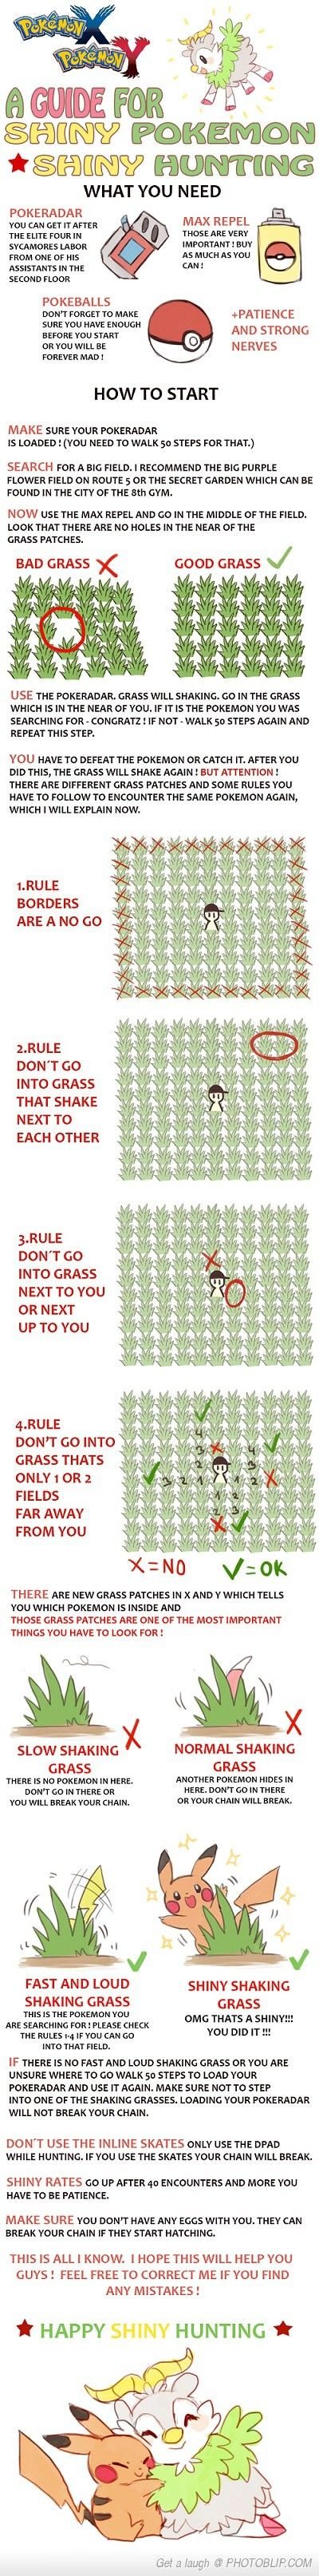 A Guide For Hunting Shiny Pokemon! Gotta try it! :3